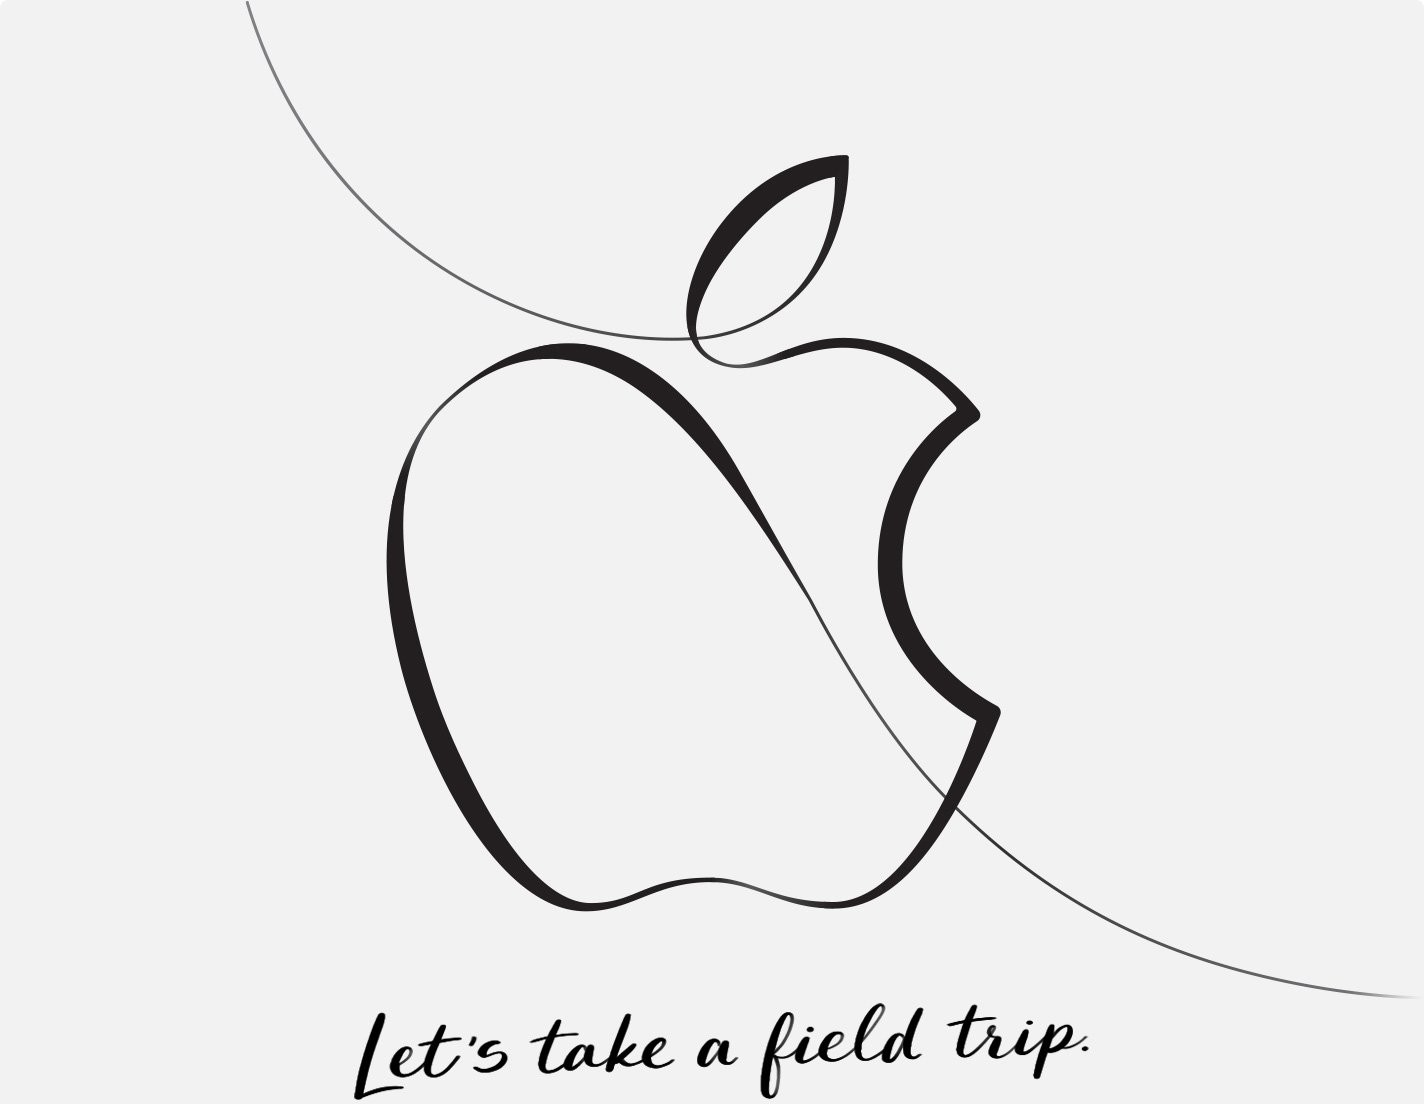 Apple announces March 27th education-focused event in Chicago